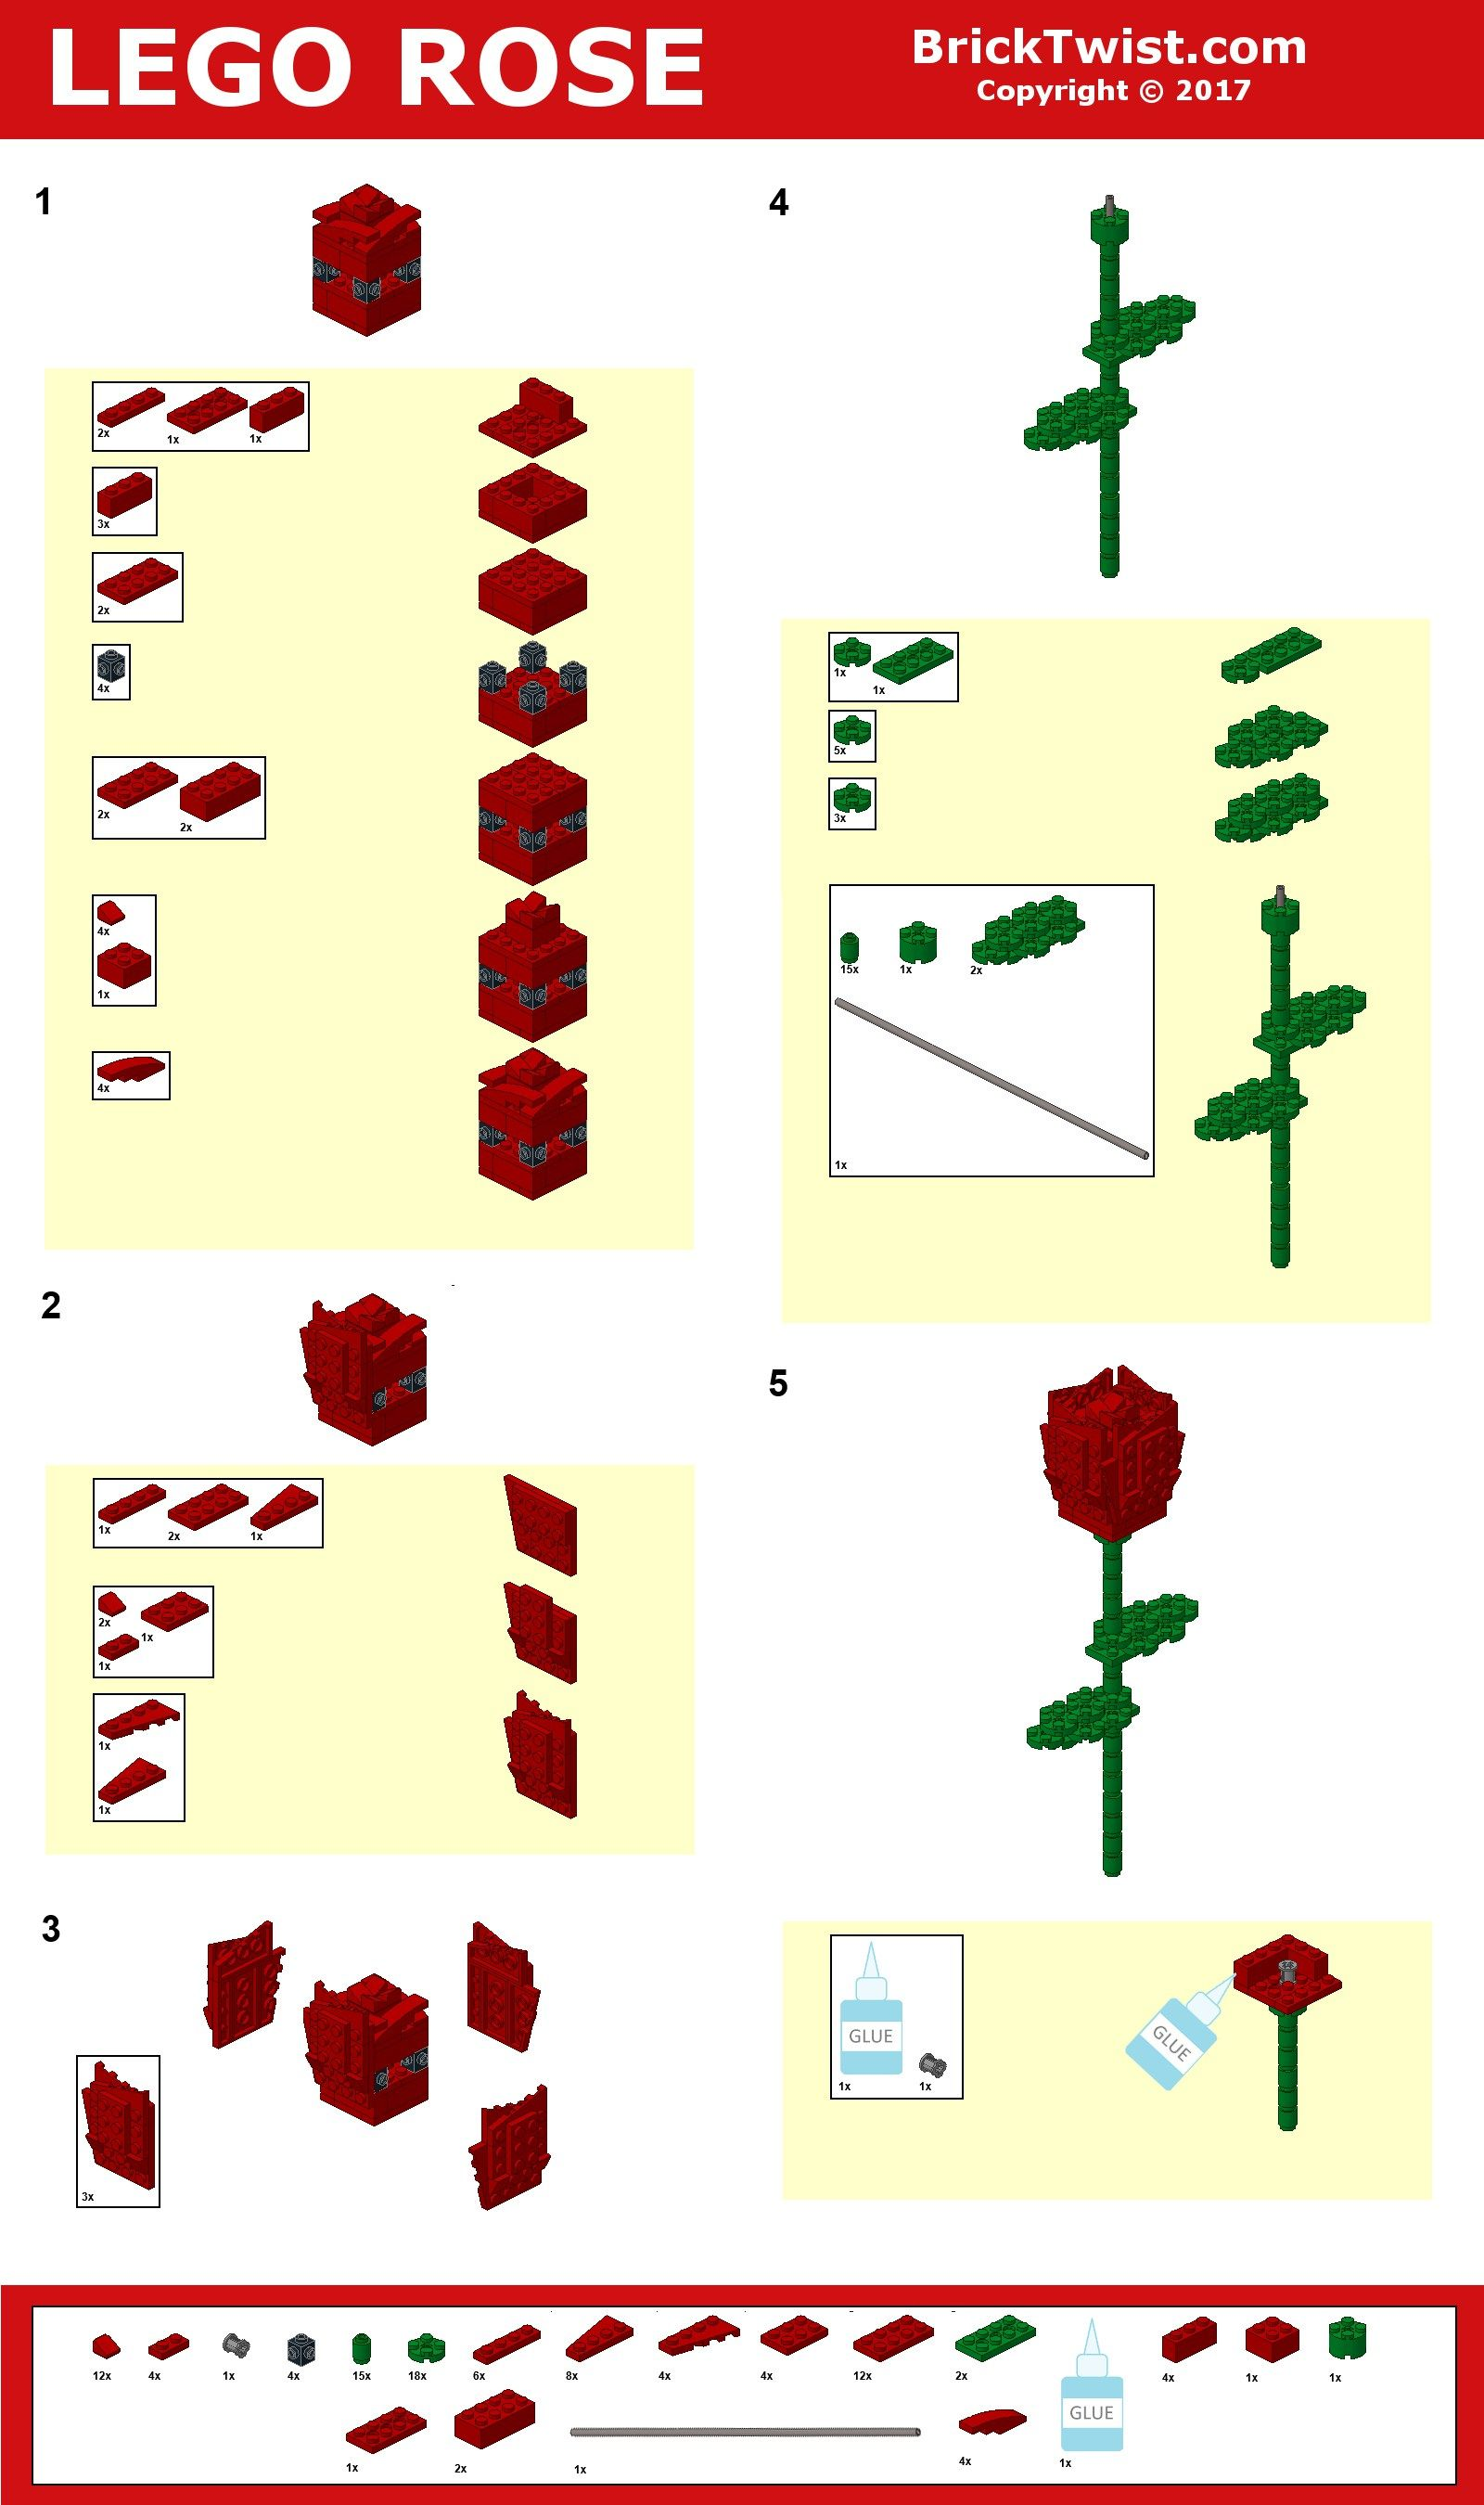 How to Build a Lego Rose Lego flower, Lego creations